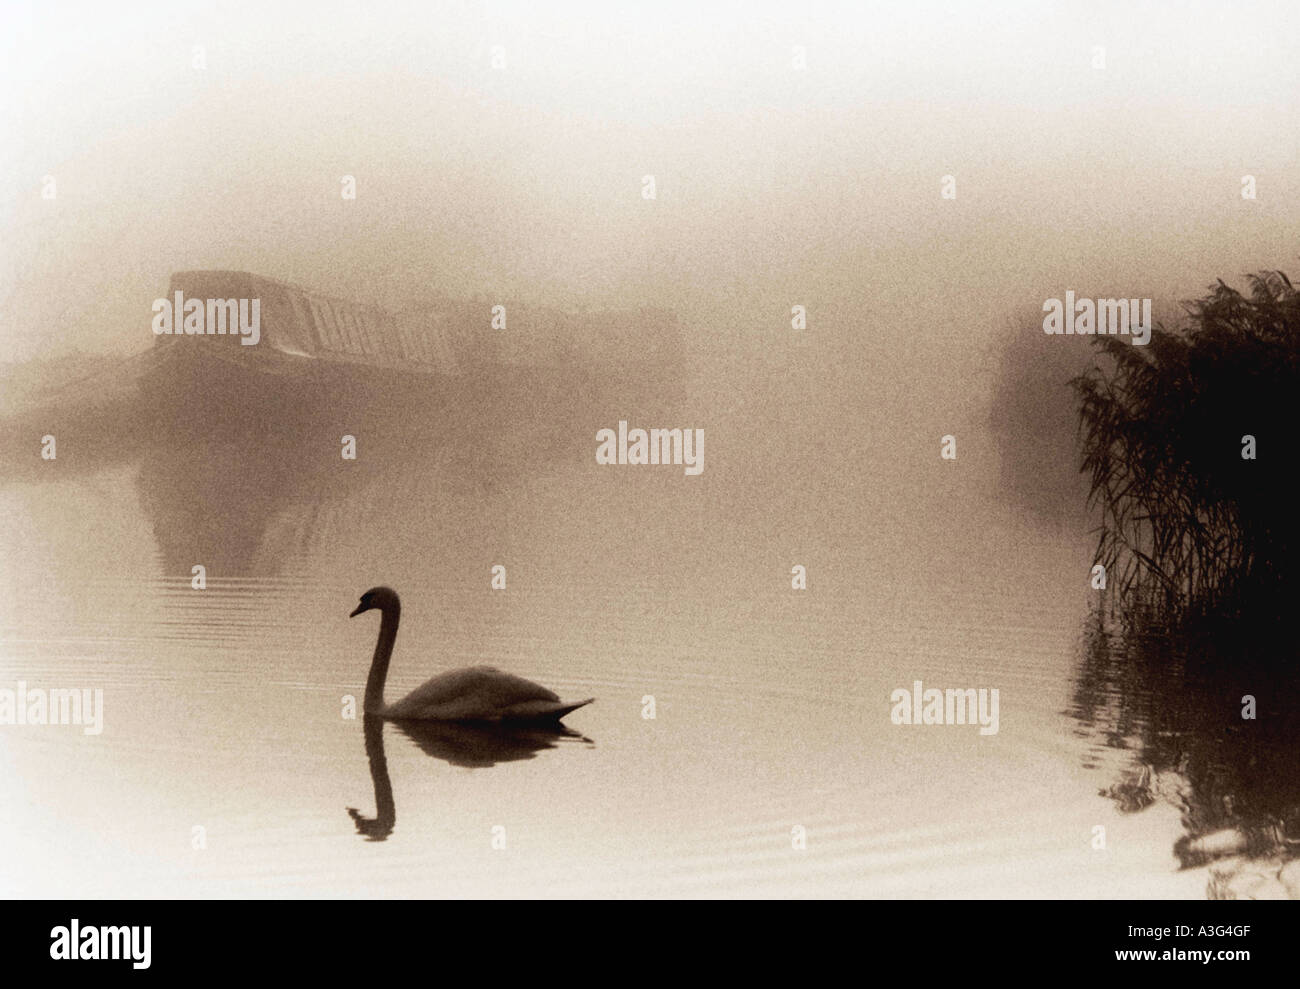 A swan is reflected in the still water as it swims across the Oxford canal through the mist. - Stock Image